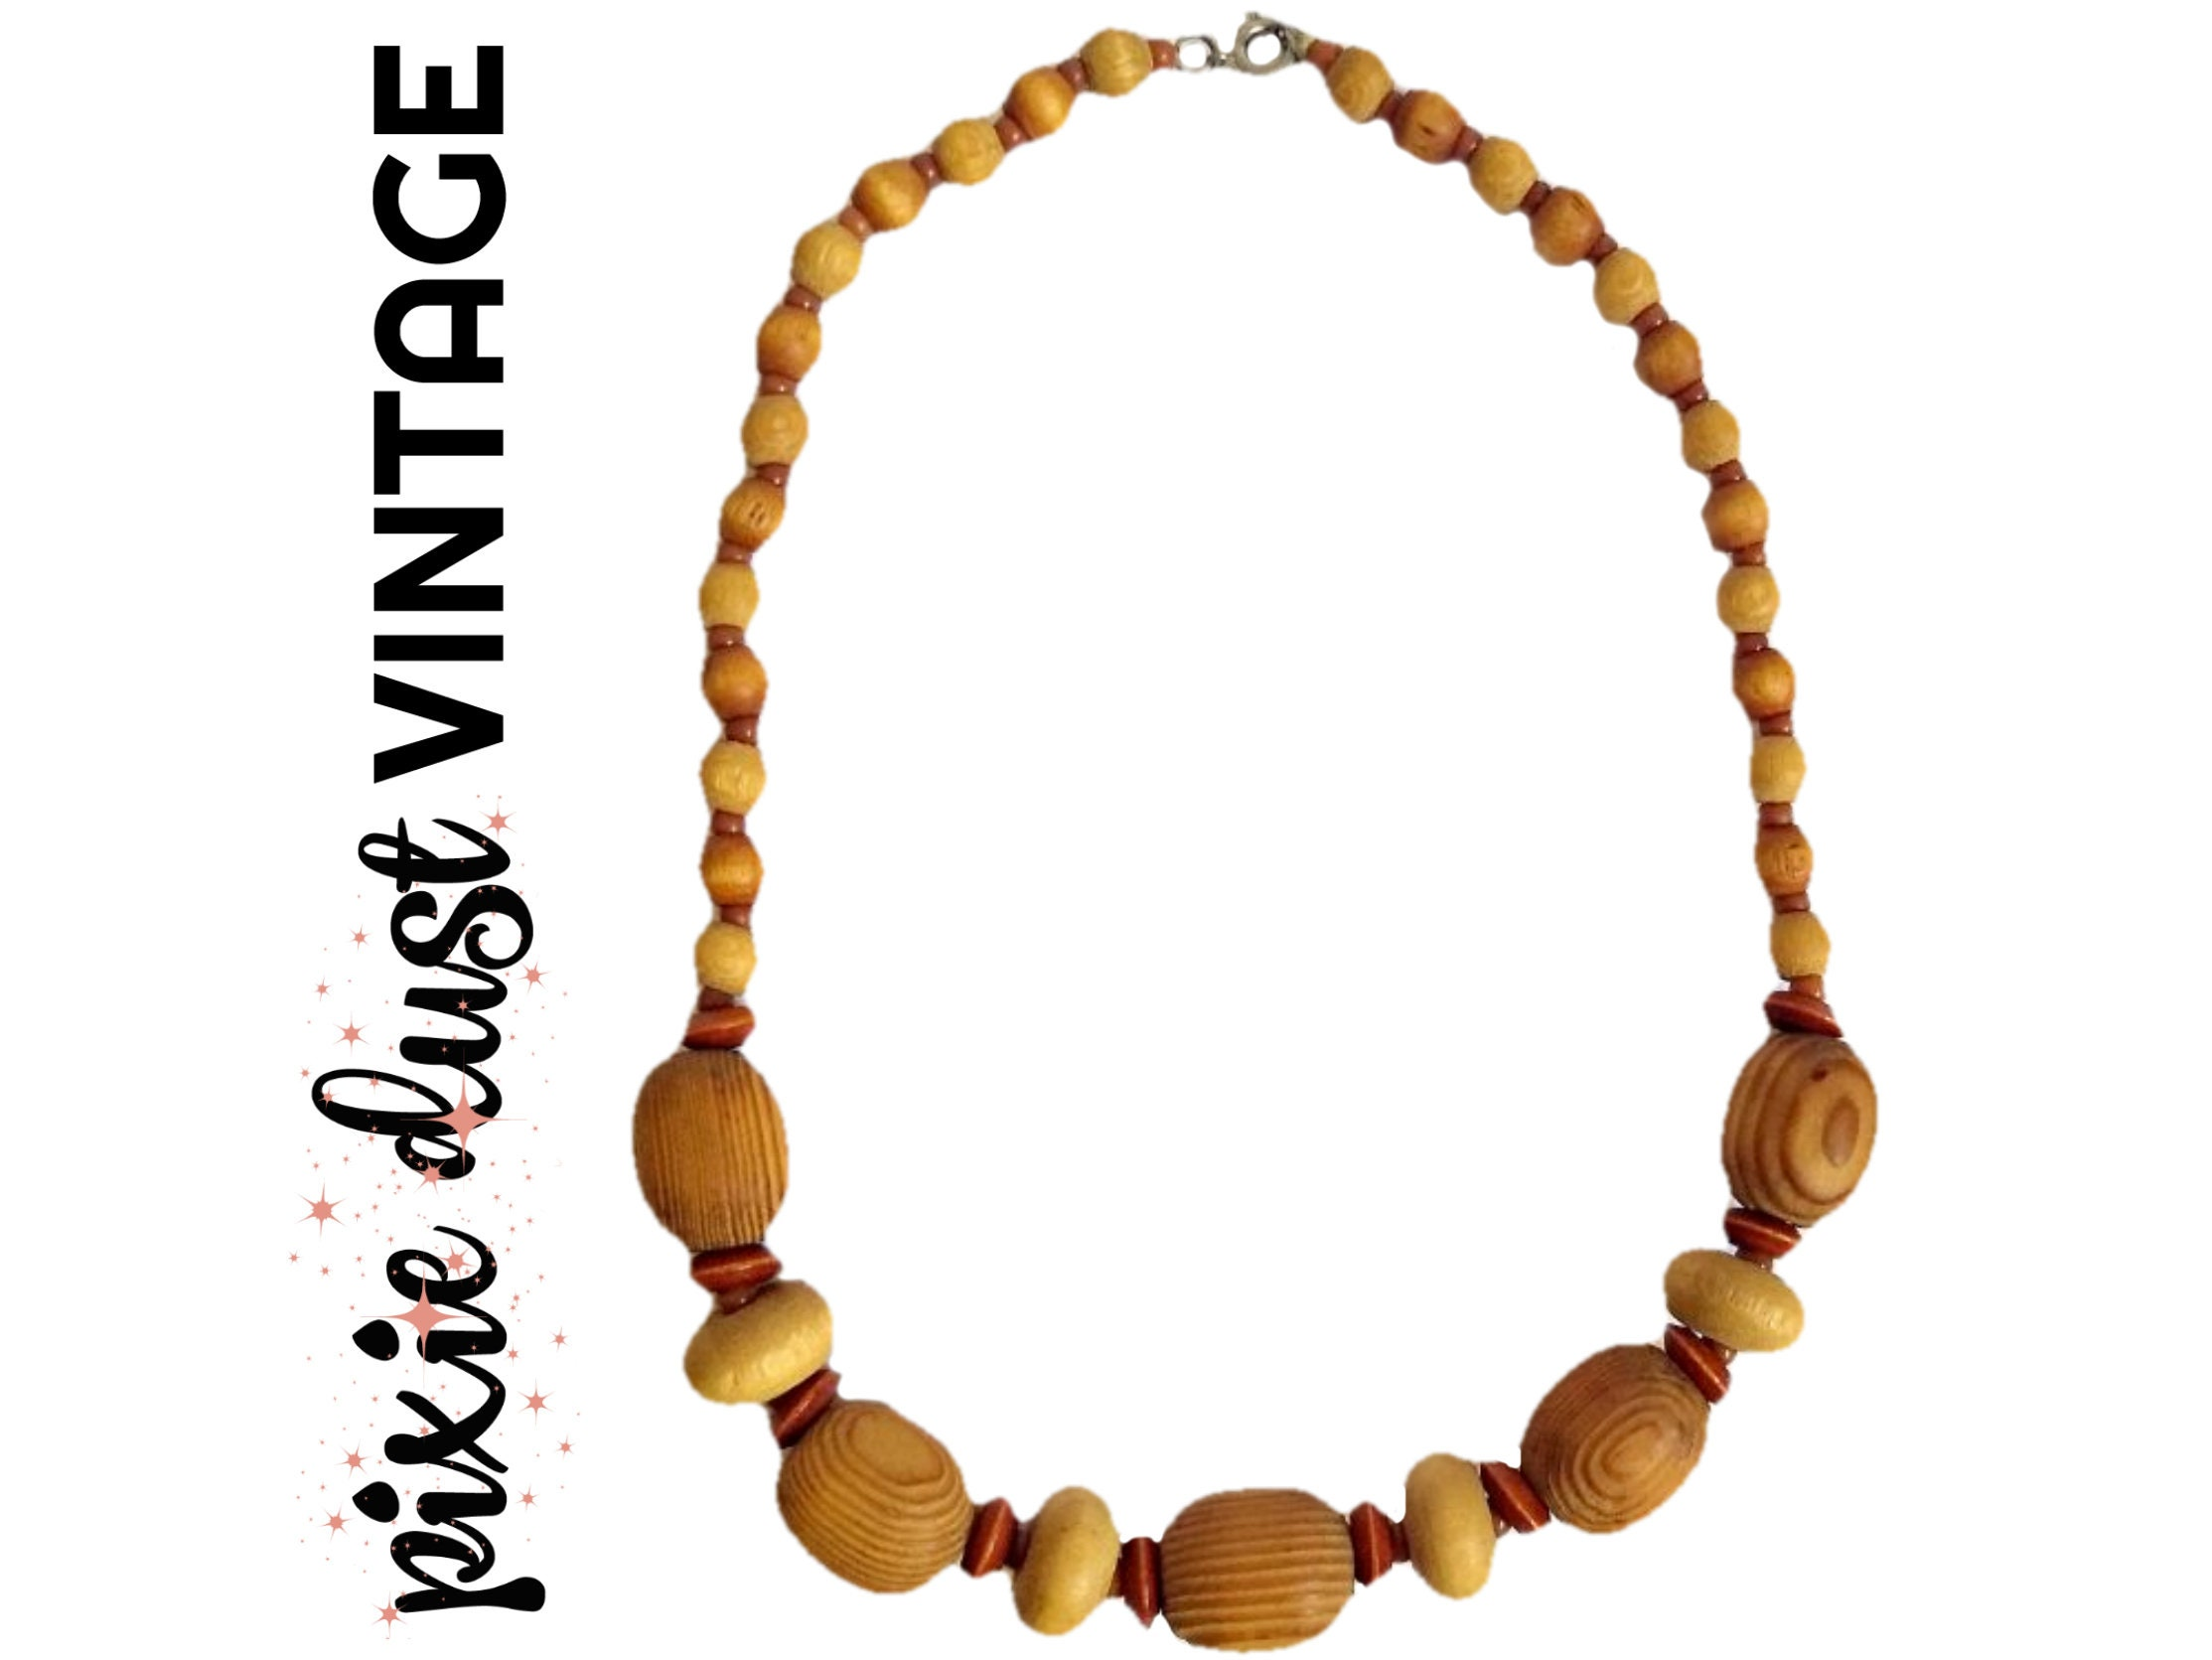 Wood Bead Necklace Vintage Wooden Beads Beaded Antique Retro 50s 60s 1950s 1960s Mid Century